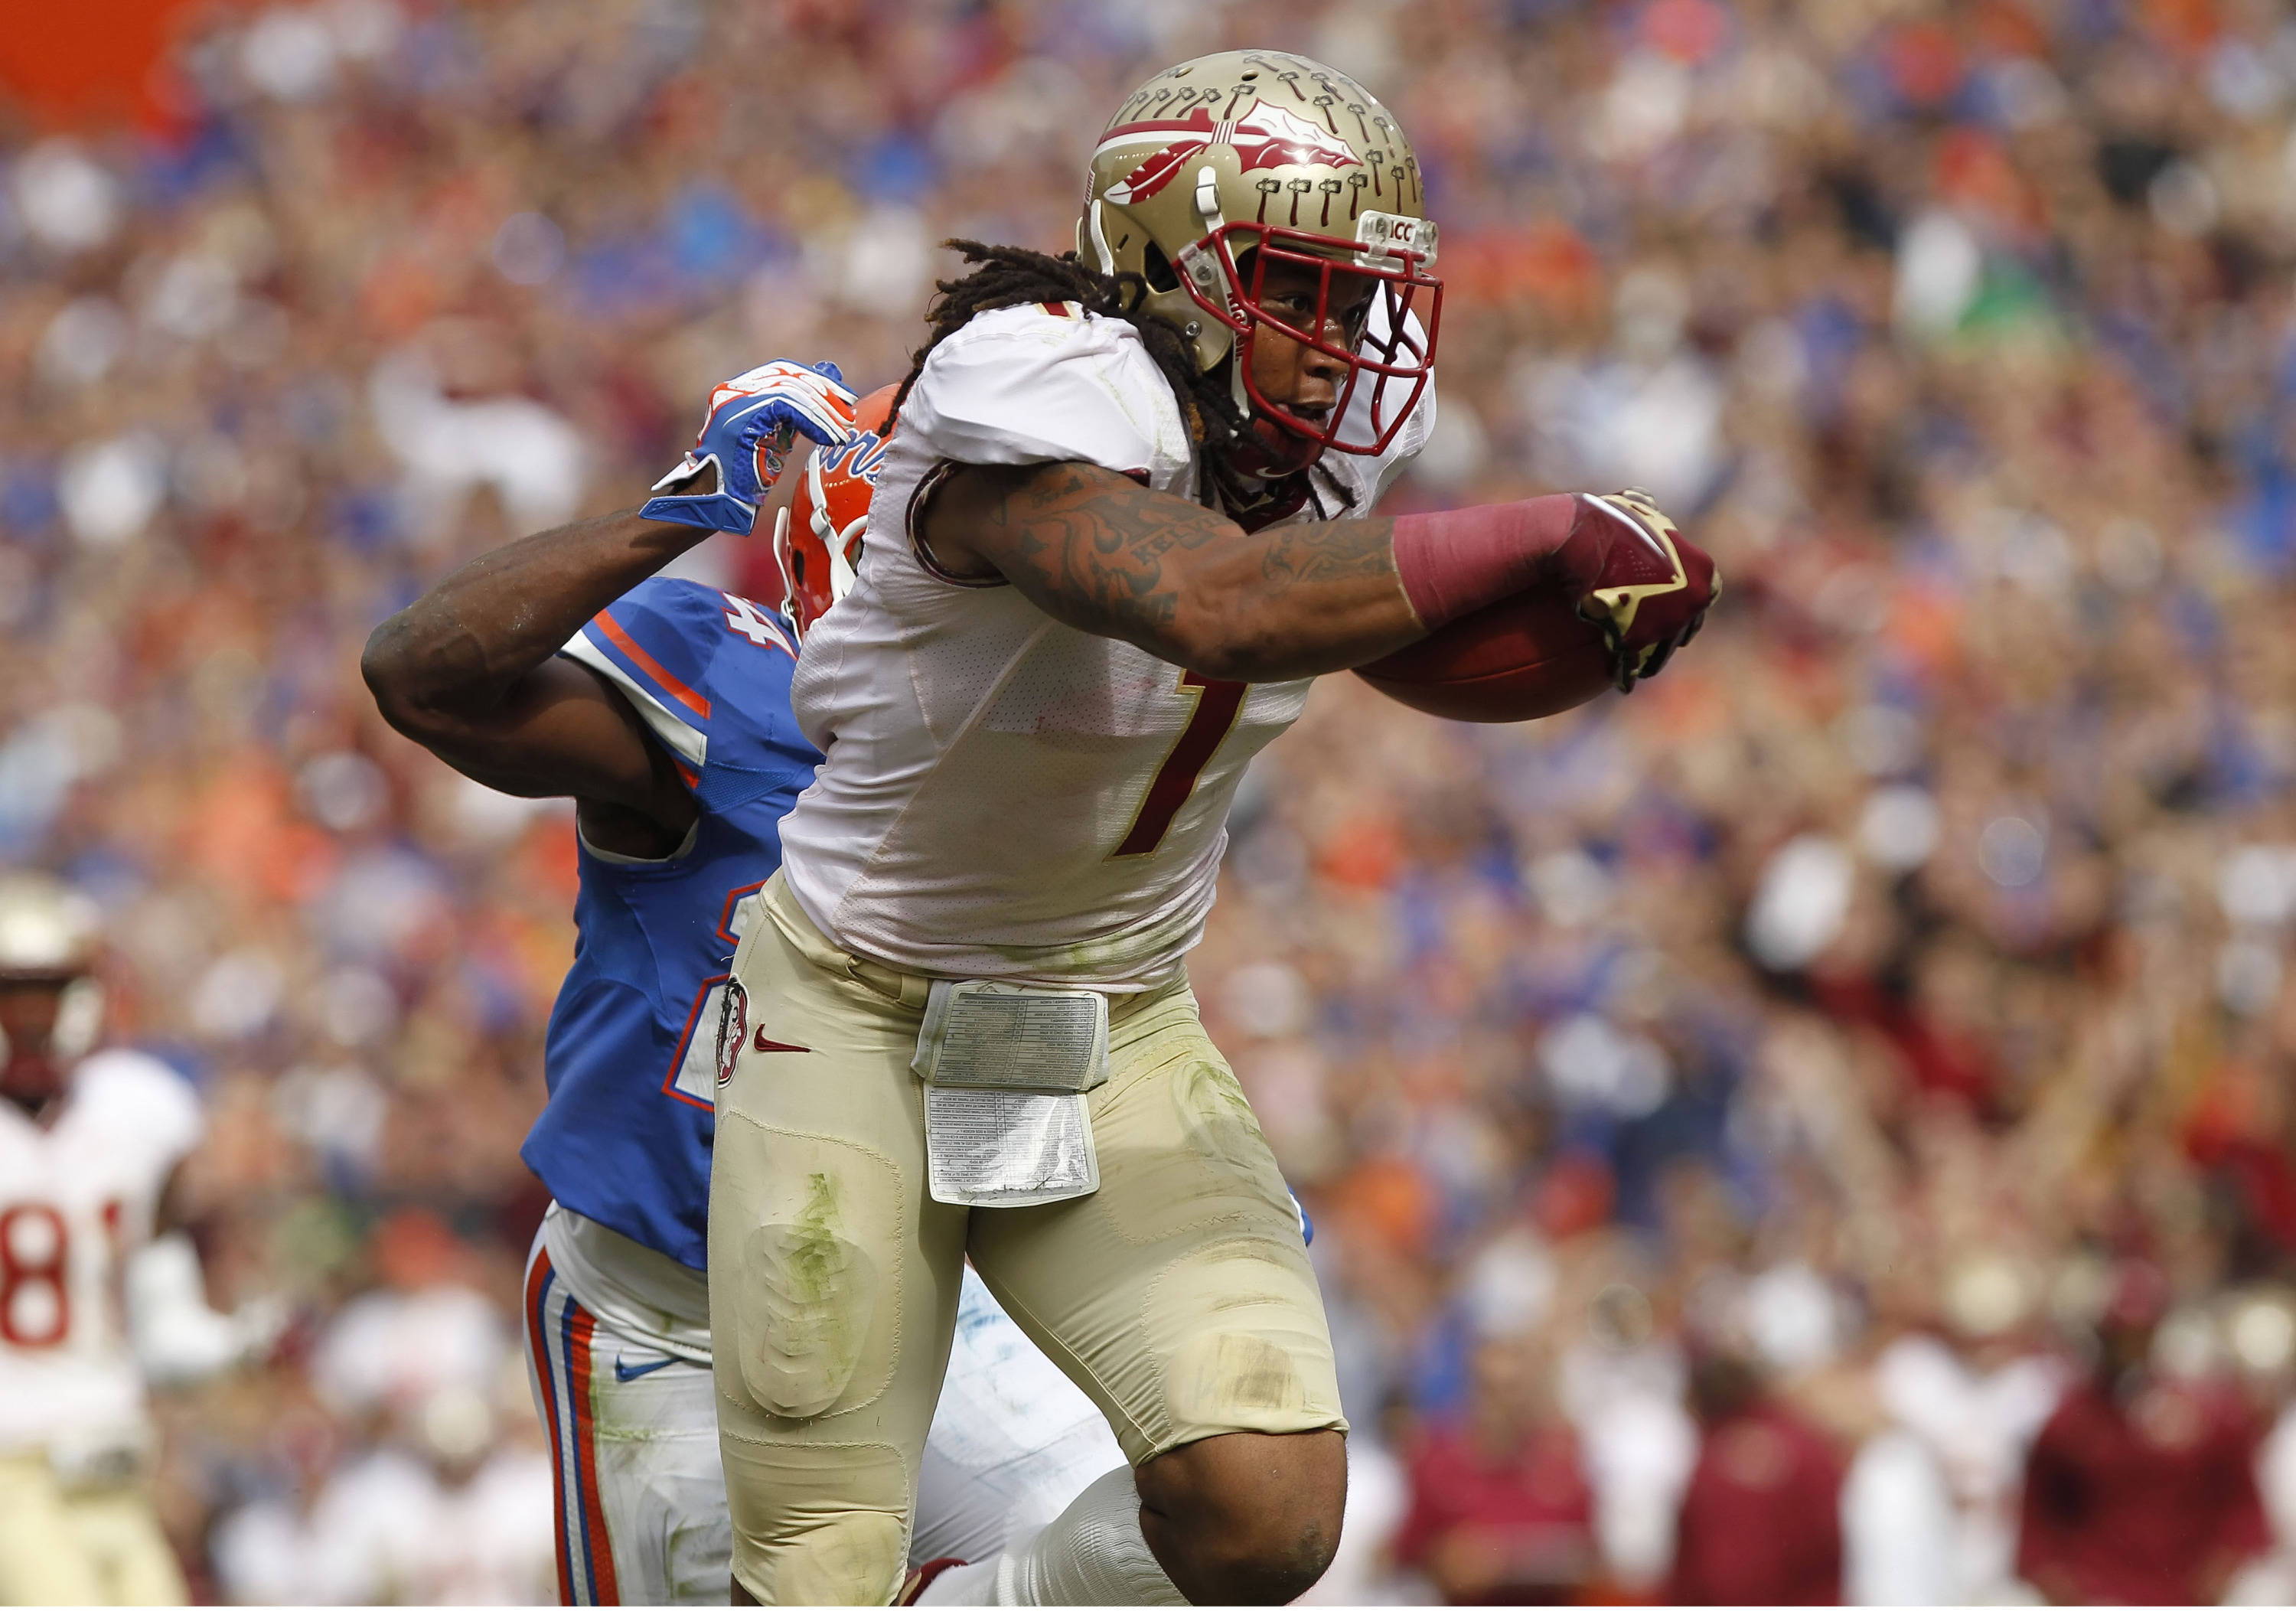 Kelvin Benjamin (1) runs the ball. Mandatory Credit: Kim Klement-USA TODAY Sports